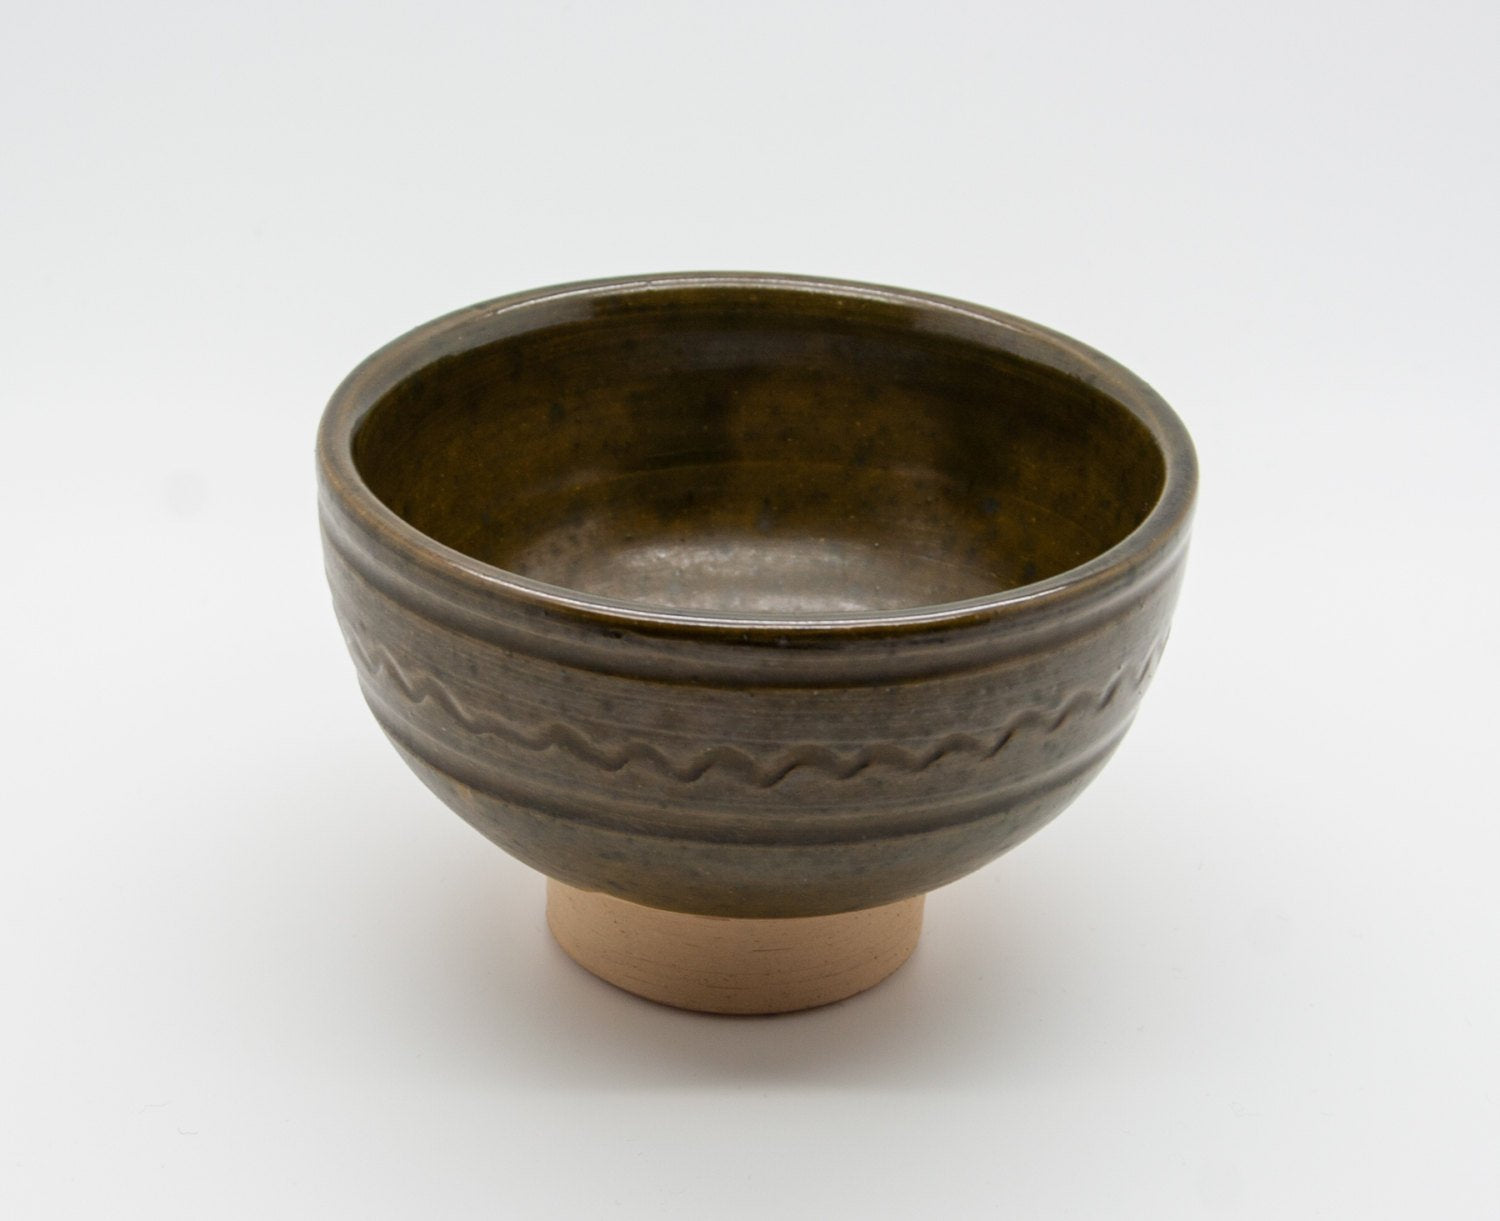 PRÆSTØ Green Glazed Ceramic Footed Bowl - Mollaris.com